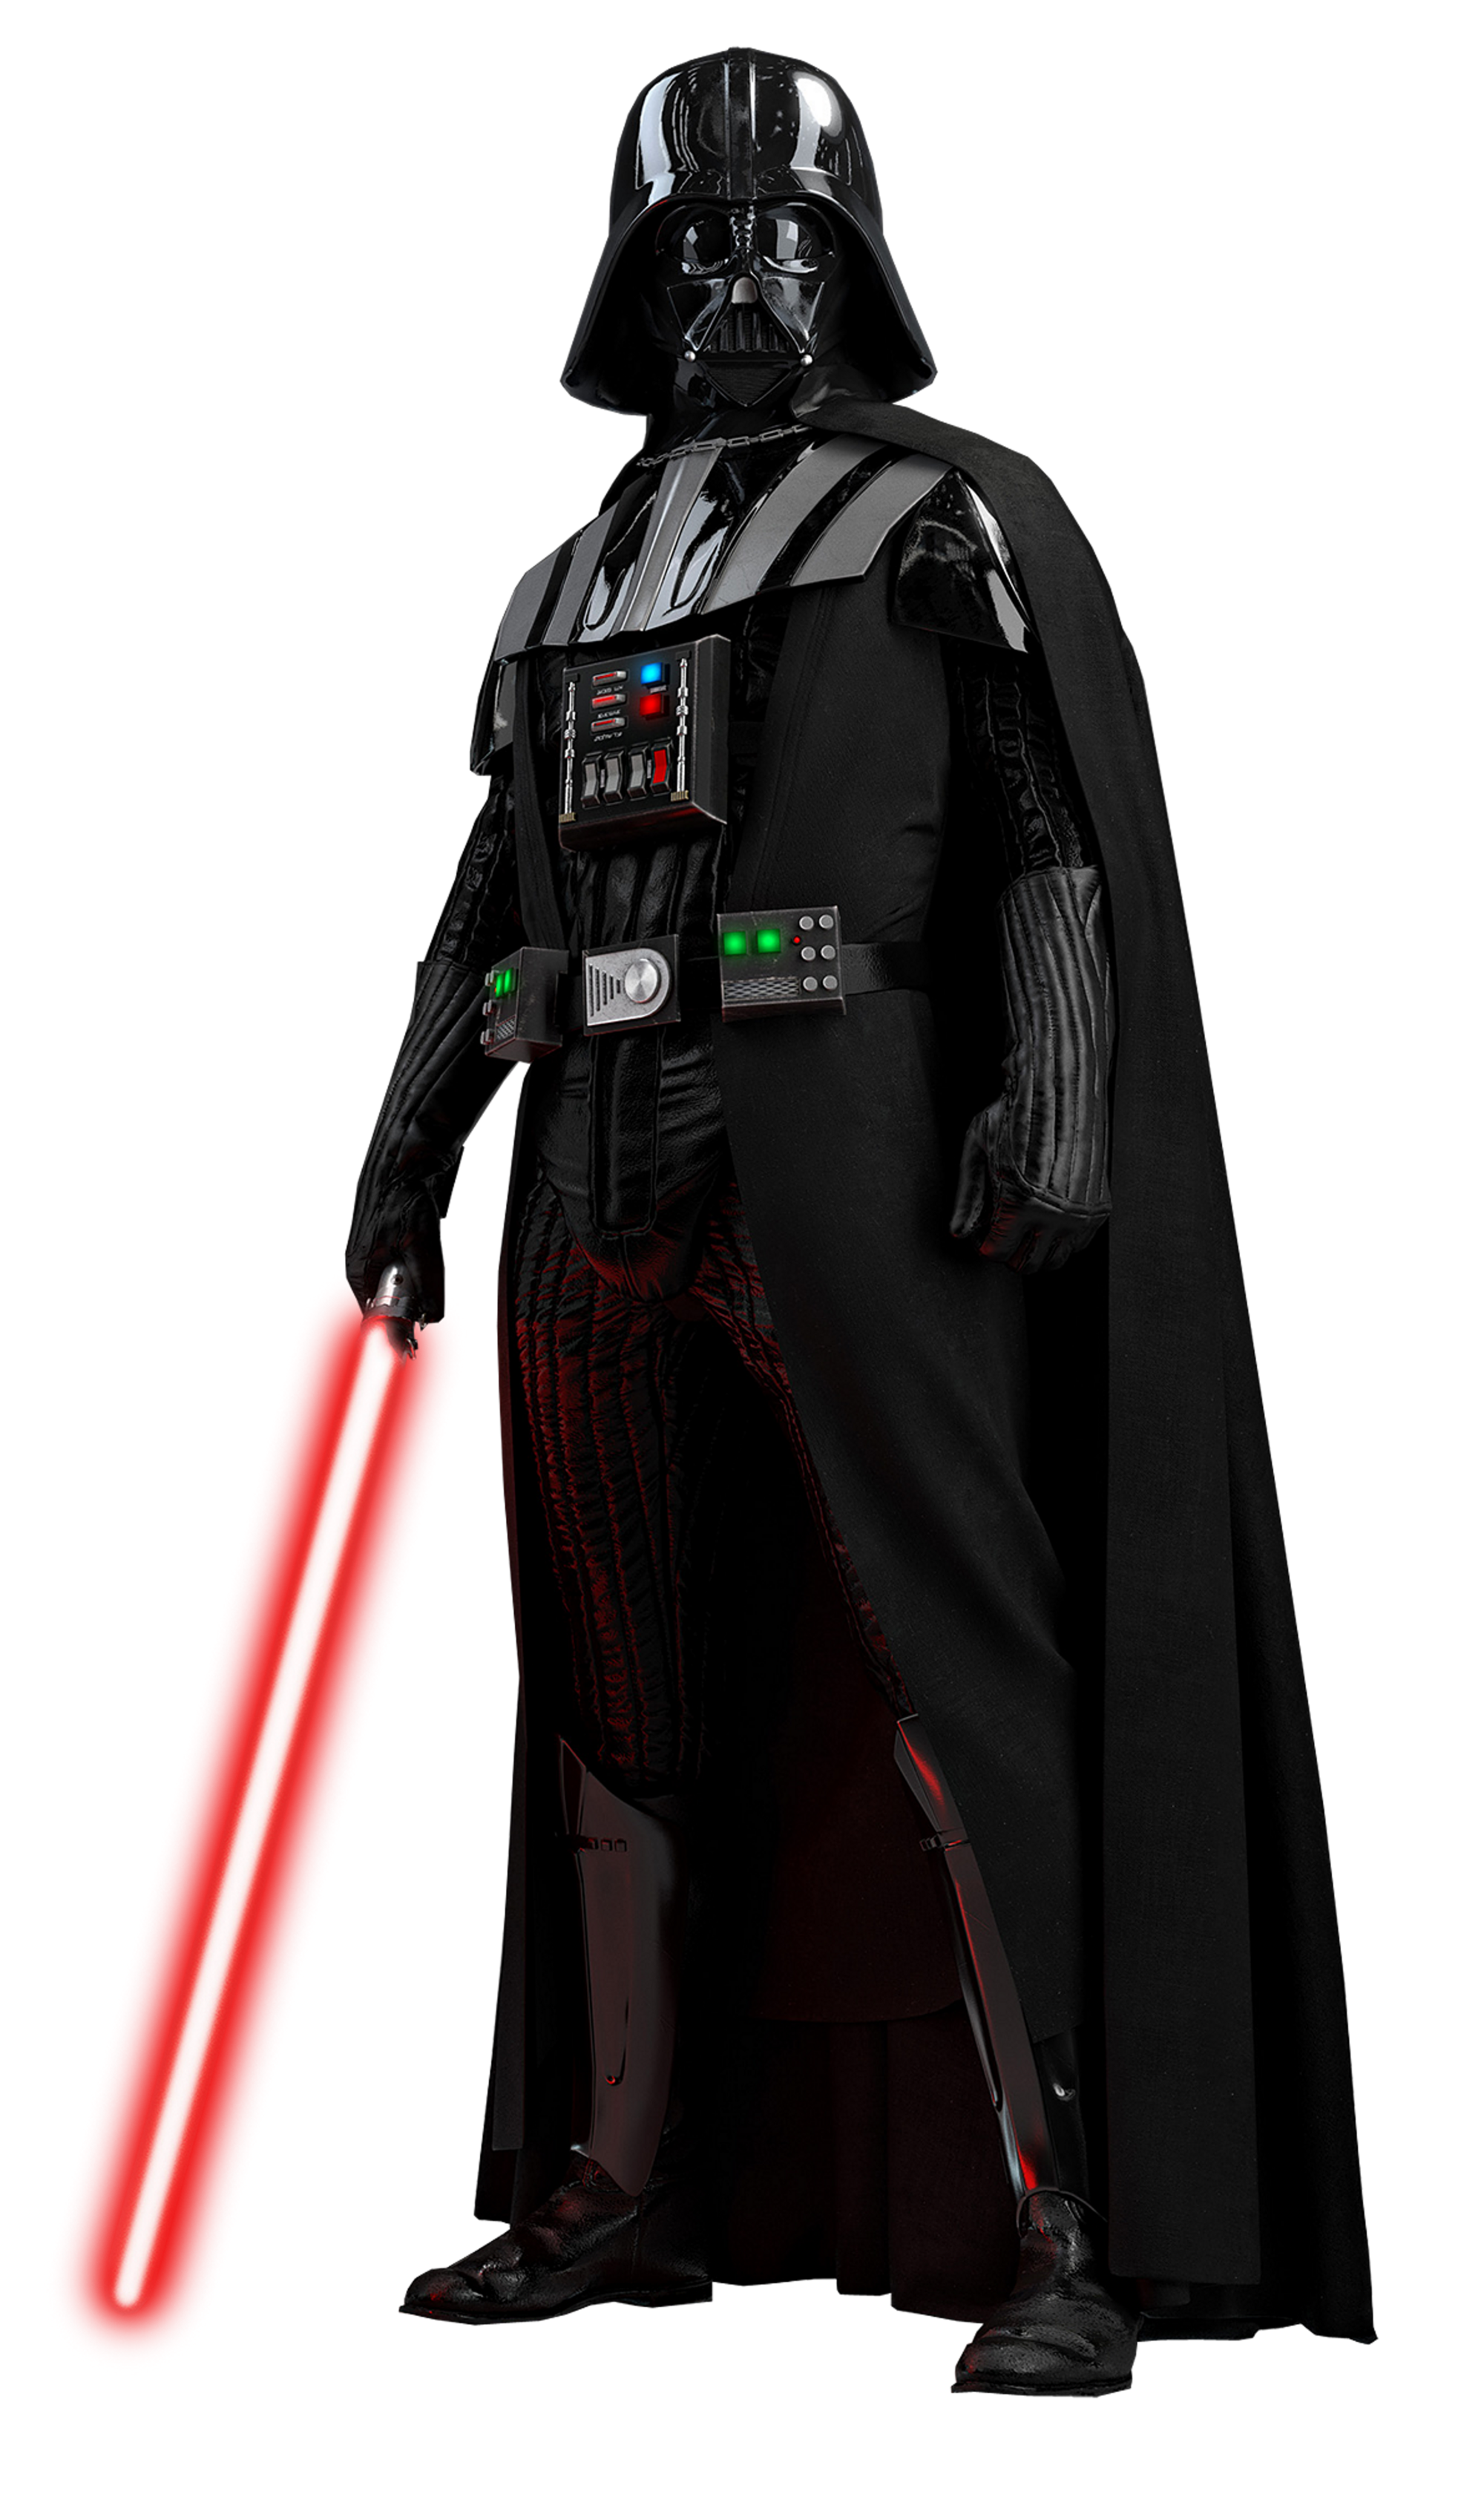 darth vader death battle fanon wiki fandom powered by. Black Bedroom Furniture Sets. Home Design Ideas